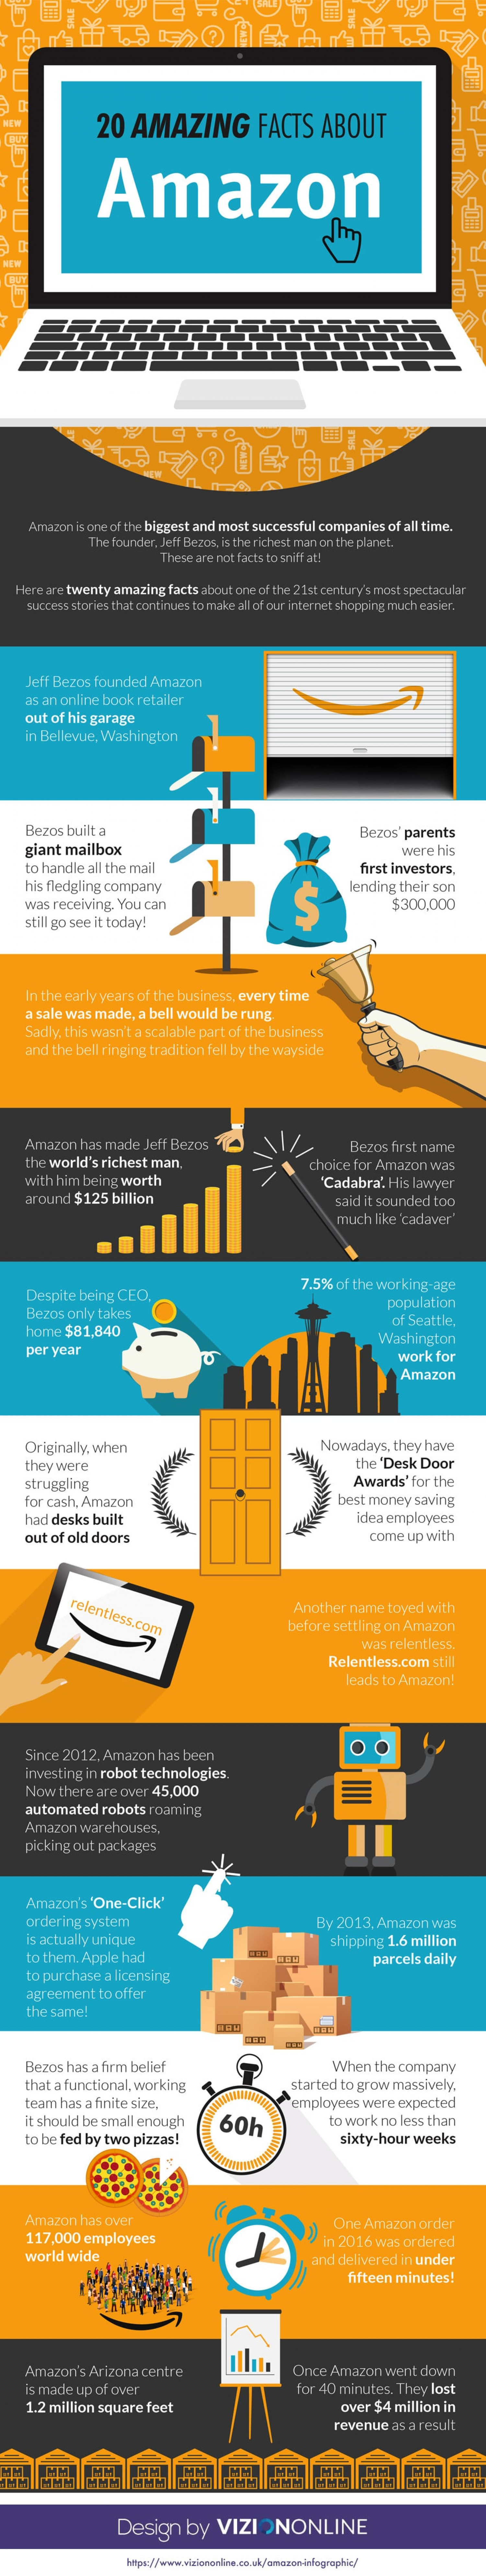 20 Amazing Facts About Amazon Infographic